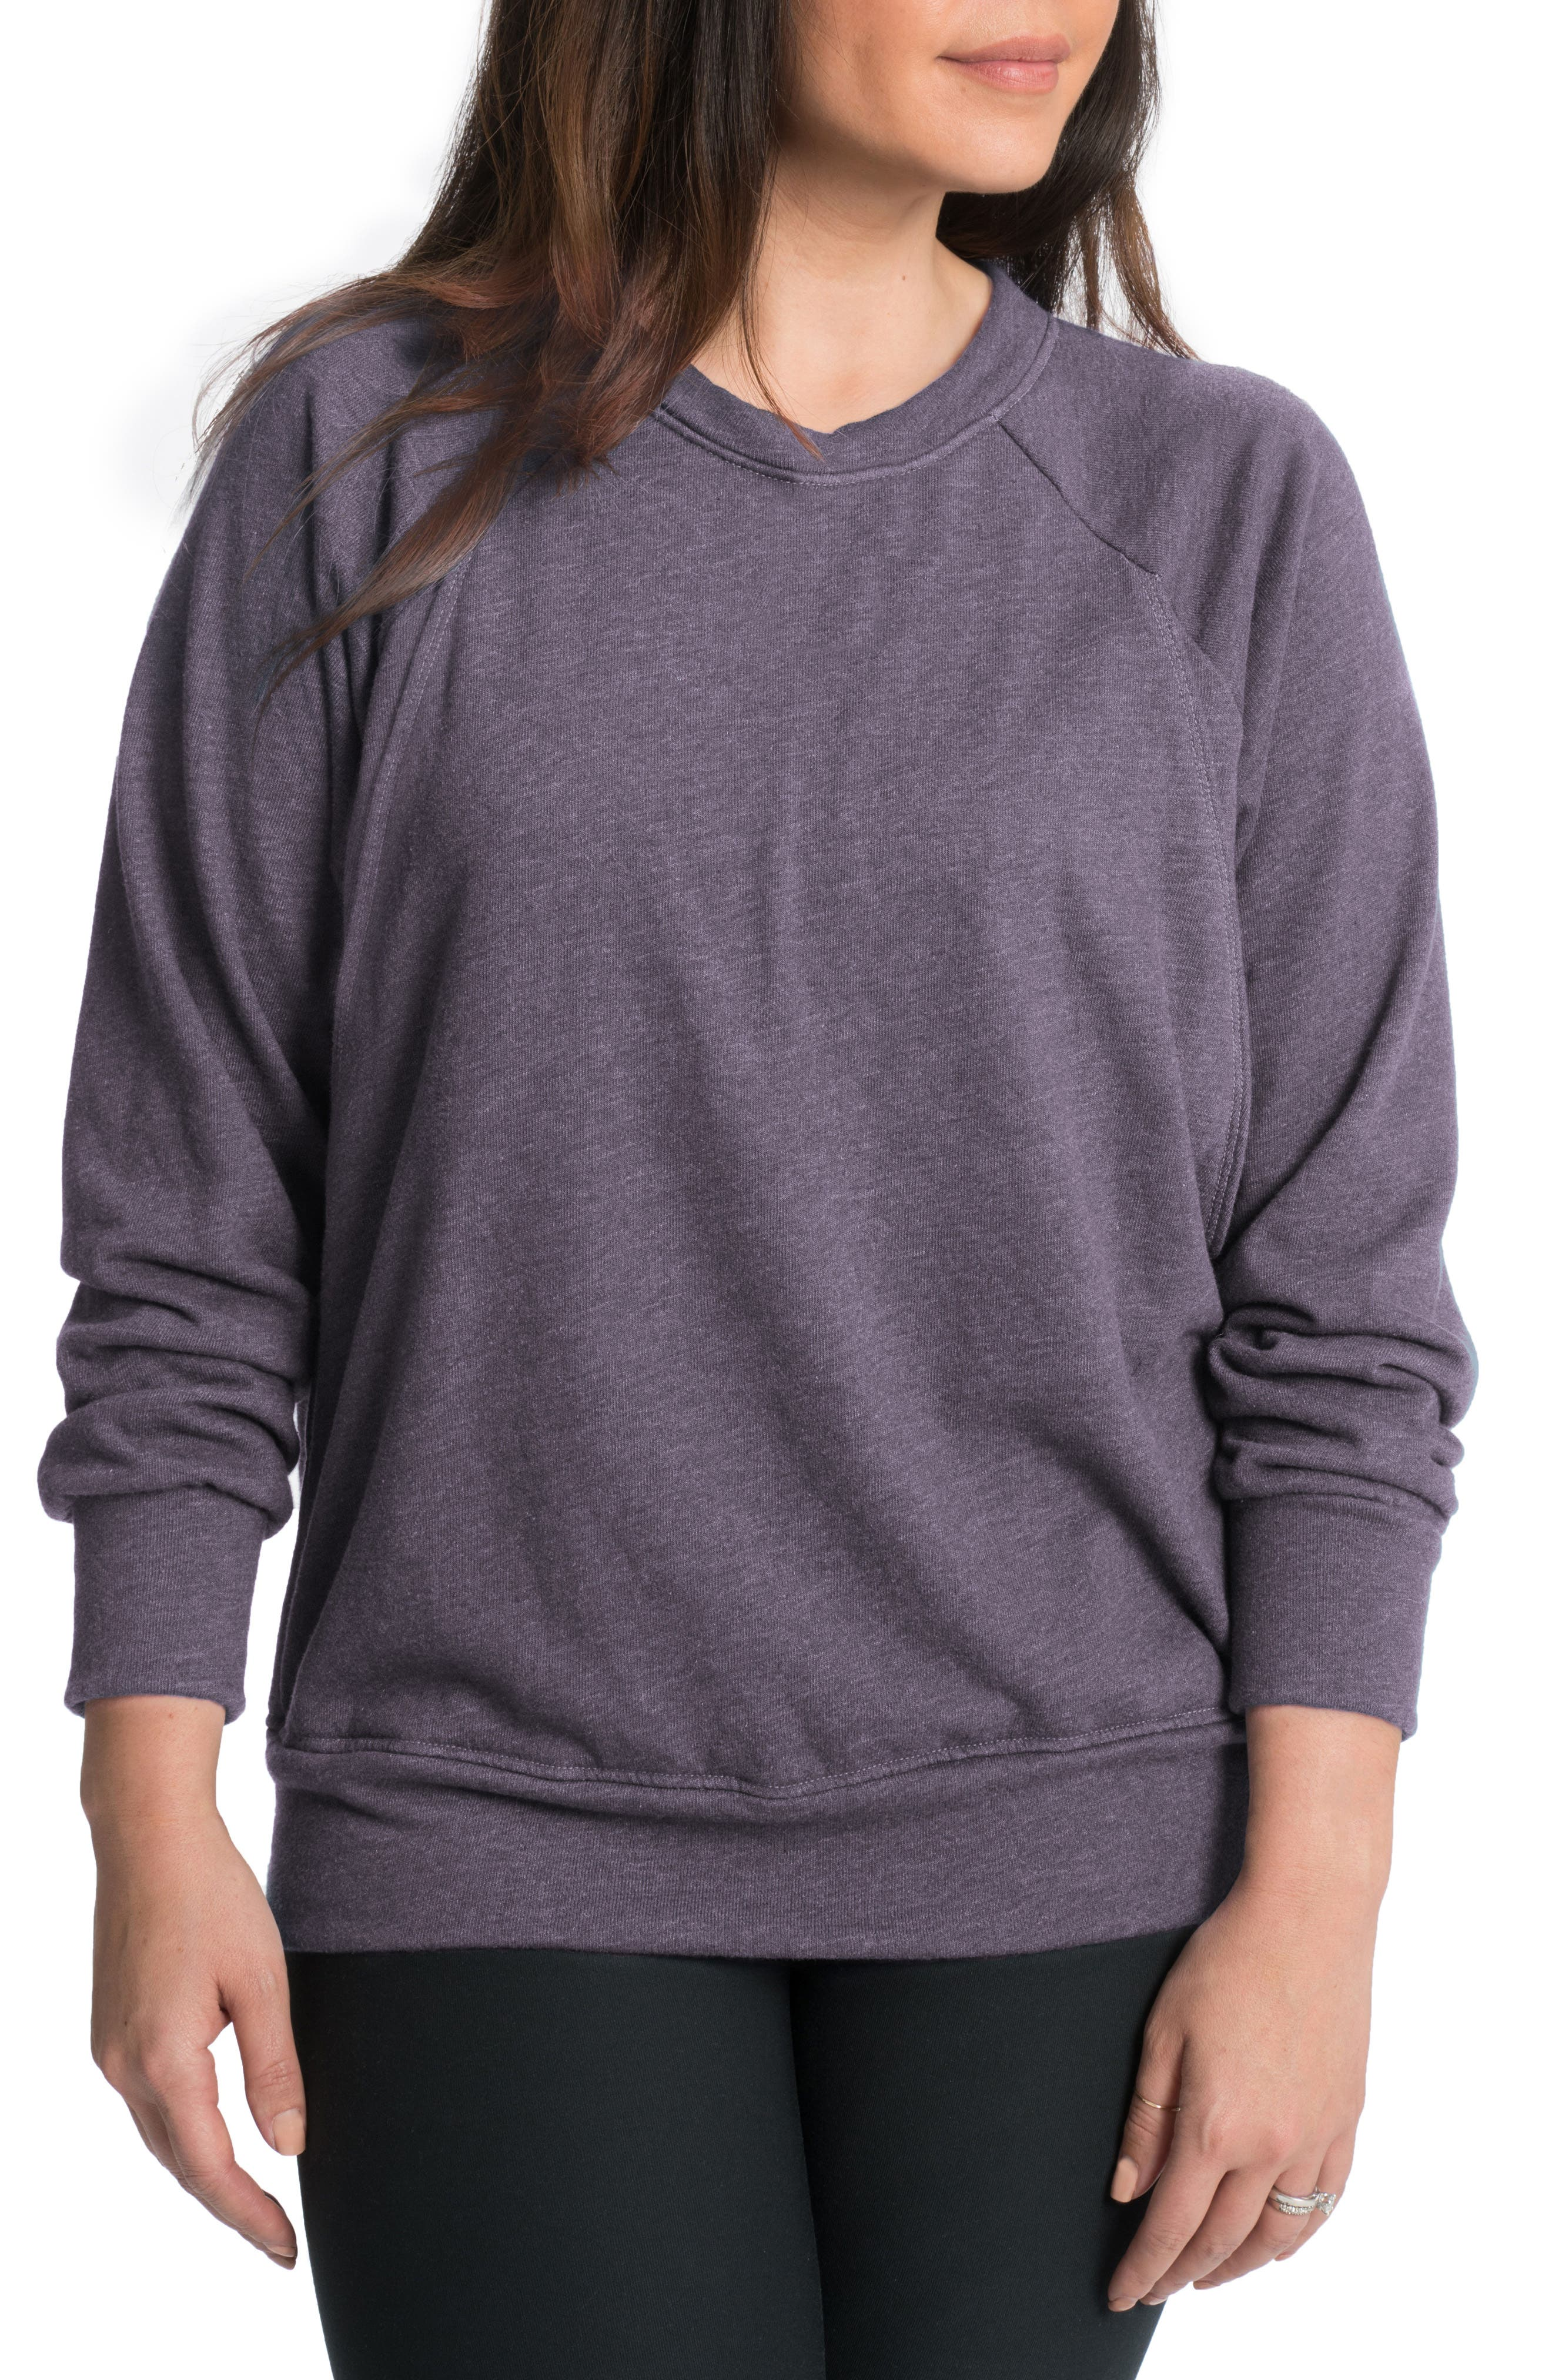 Relaxed Daily Maternity/Nursing Sweatshirt,                             Main thumbnail 1, color,                             Violet Verbena